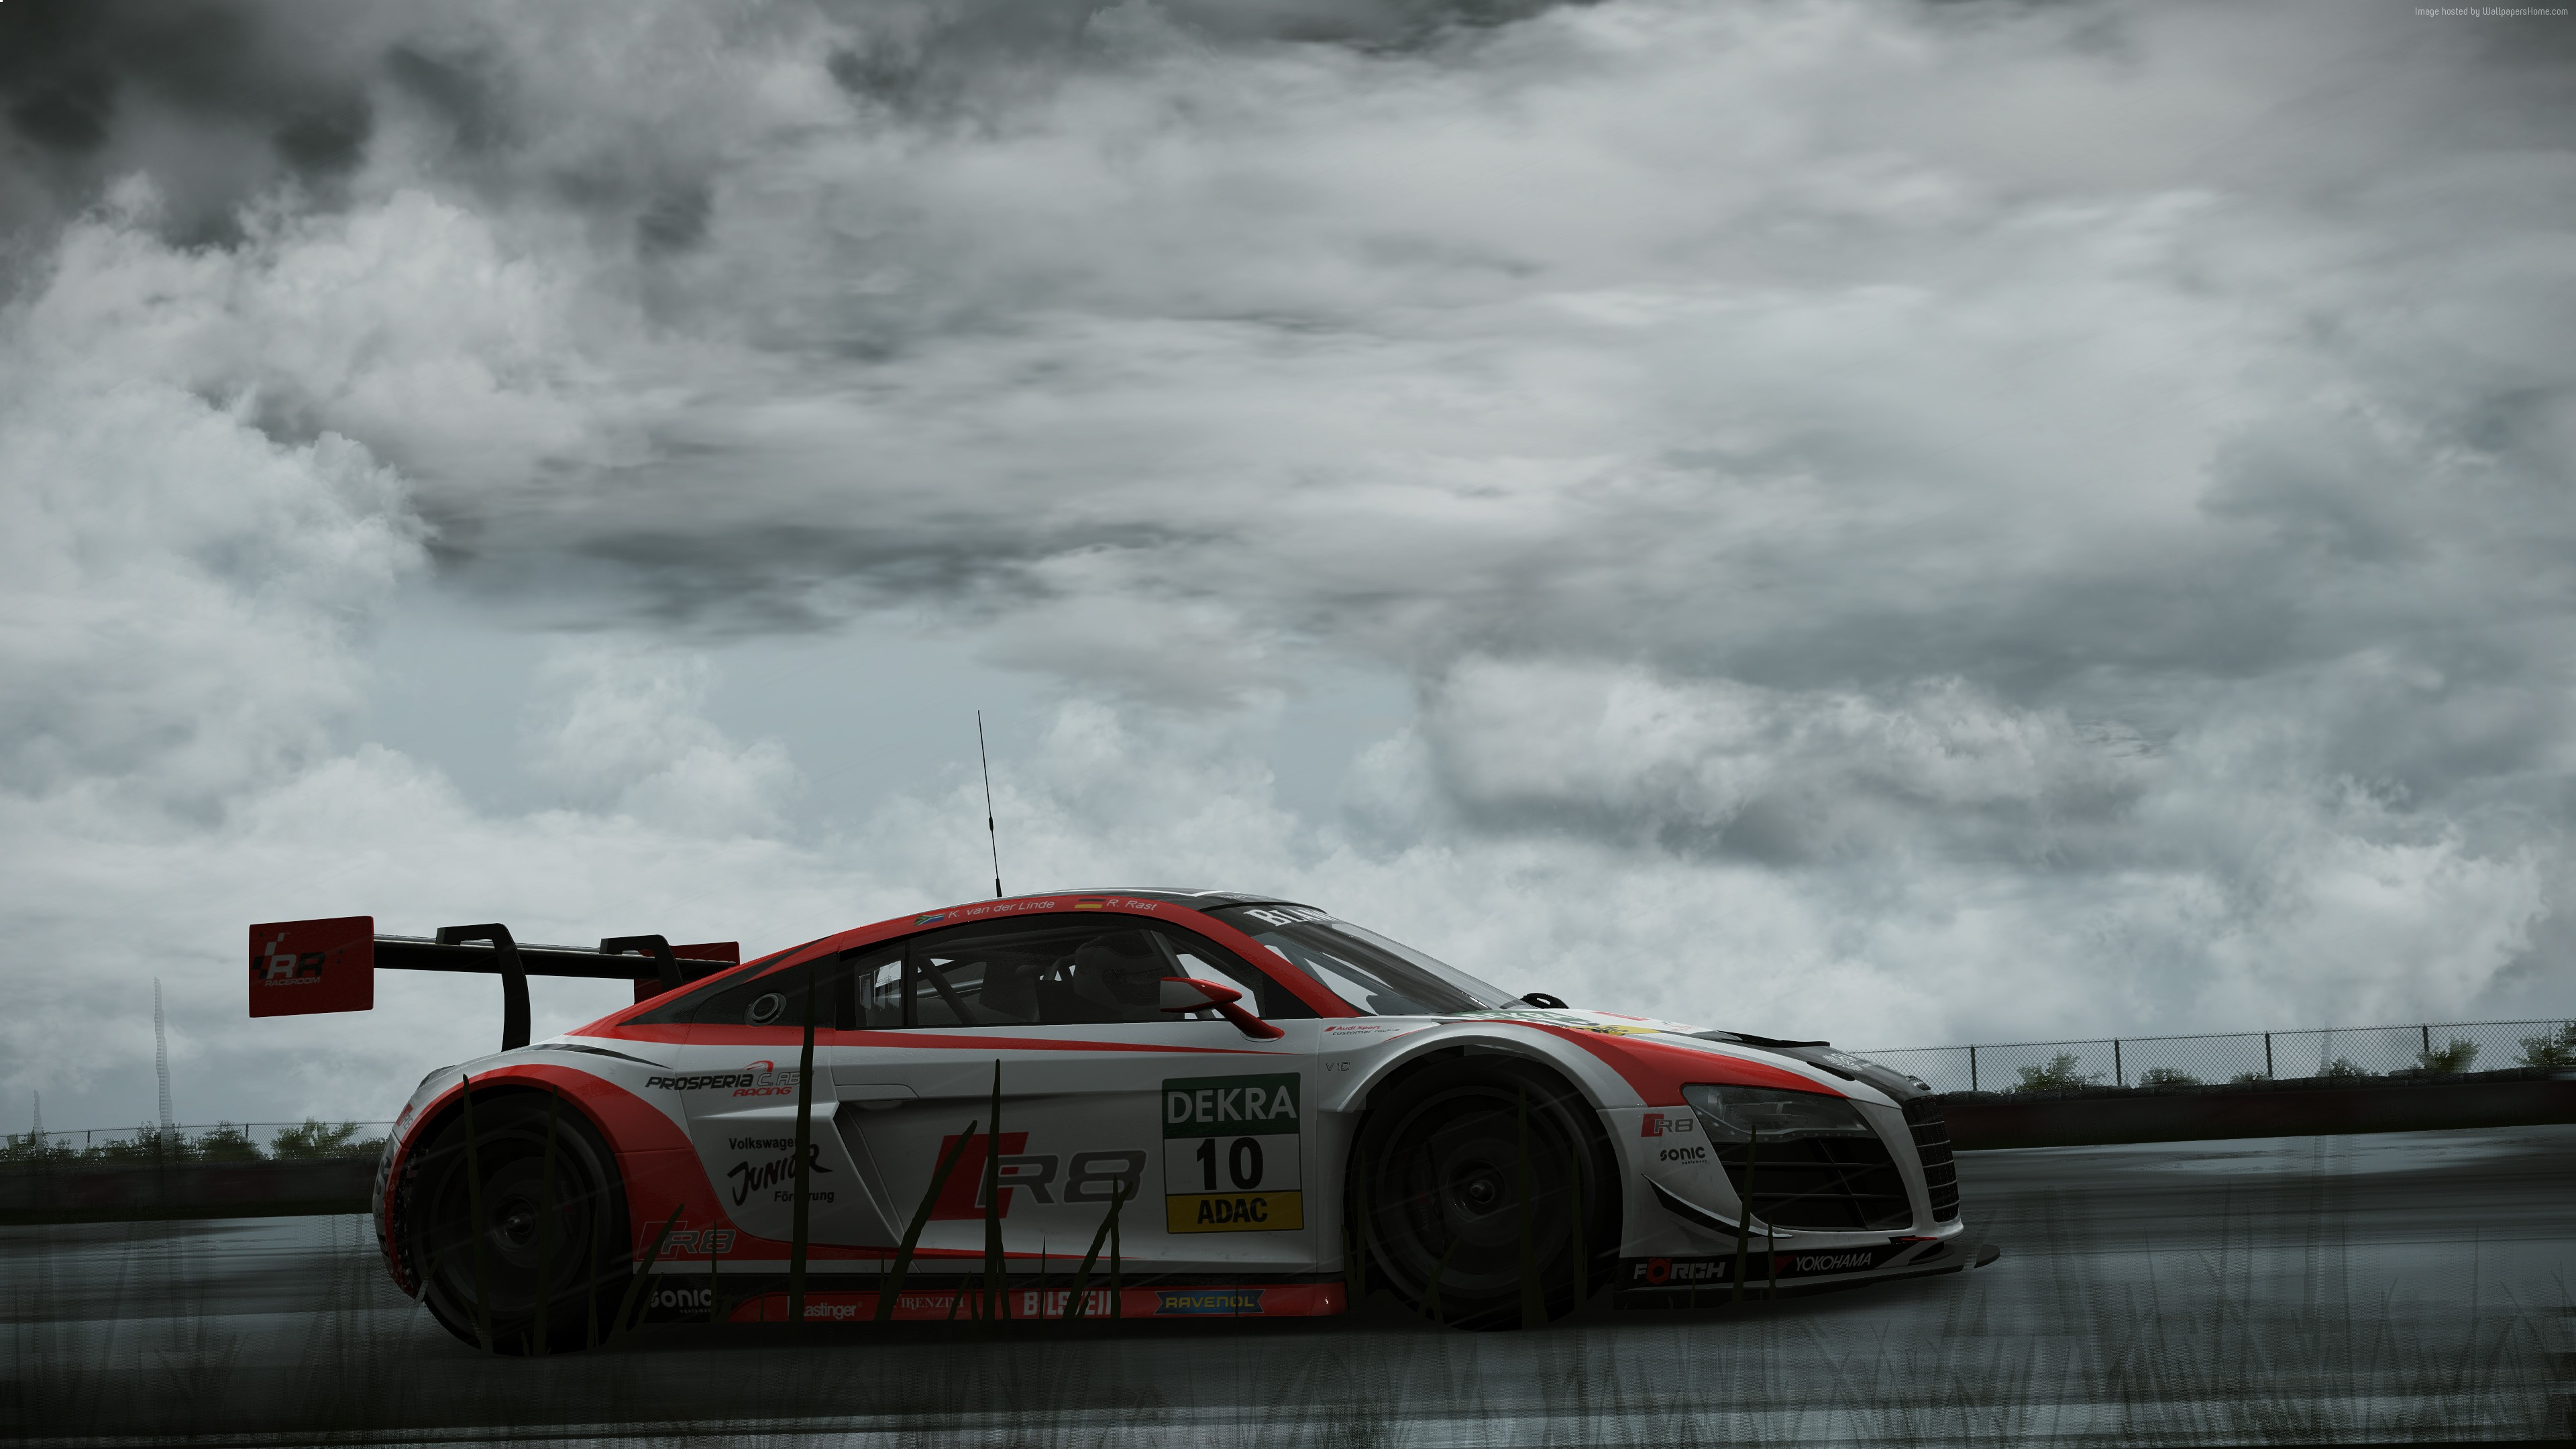 Racing Car Games Hd Wallpaper: Project Cars PC Games Wallpaper